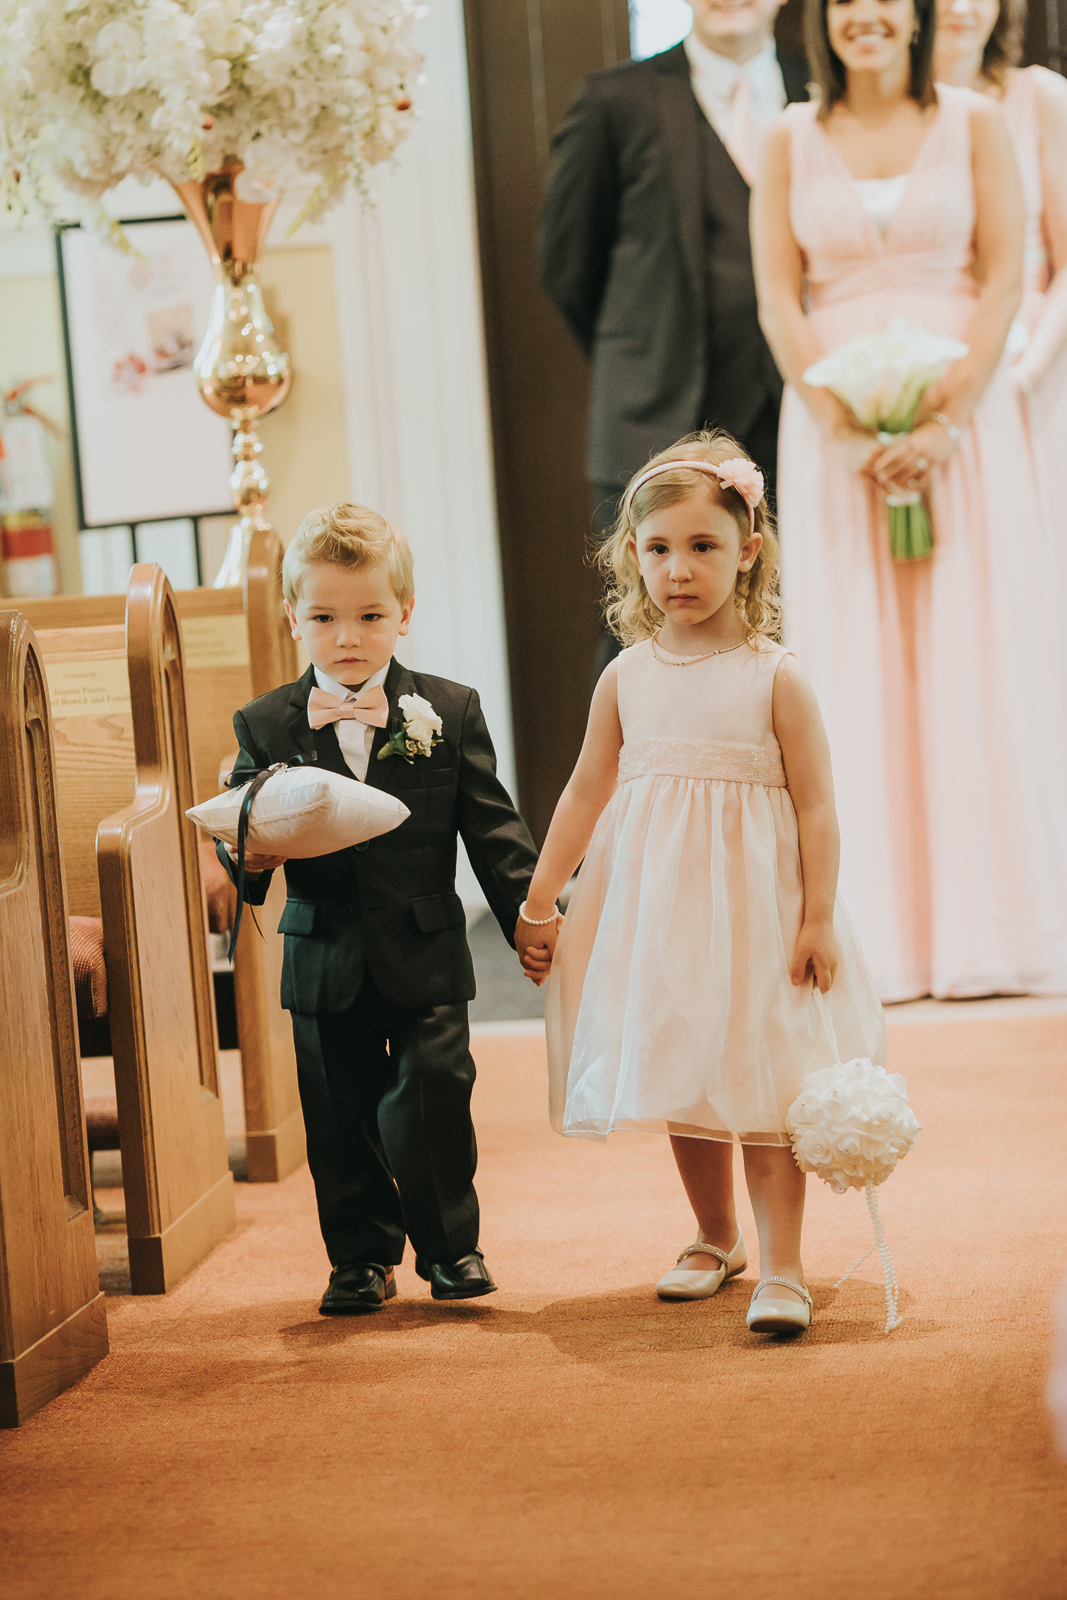 flower-girl-and-ring-boy-walking-down-aisle-italian-wedding